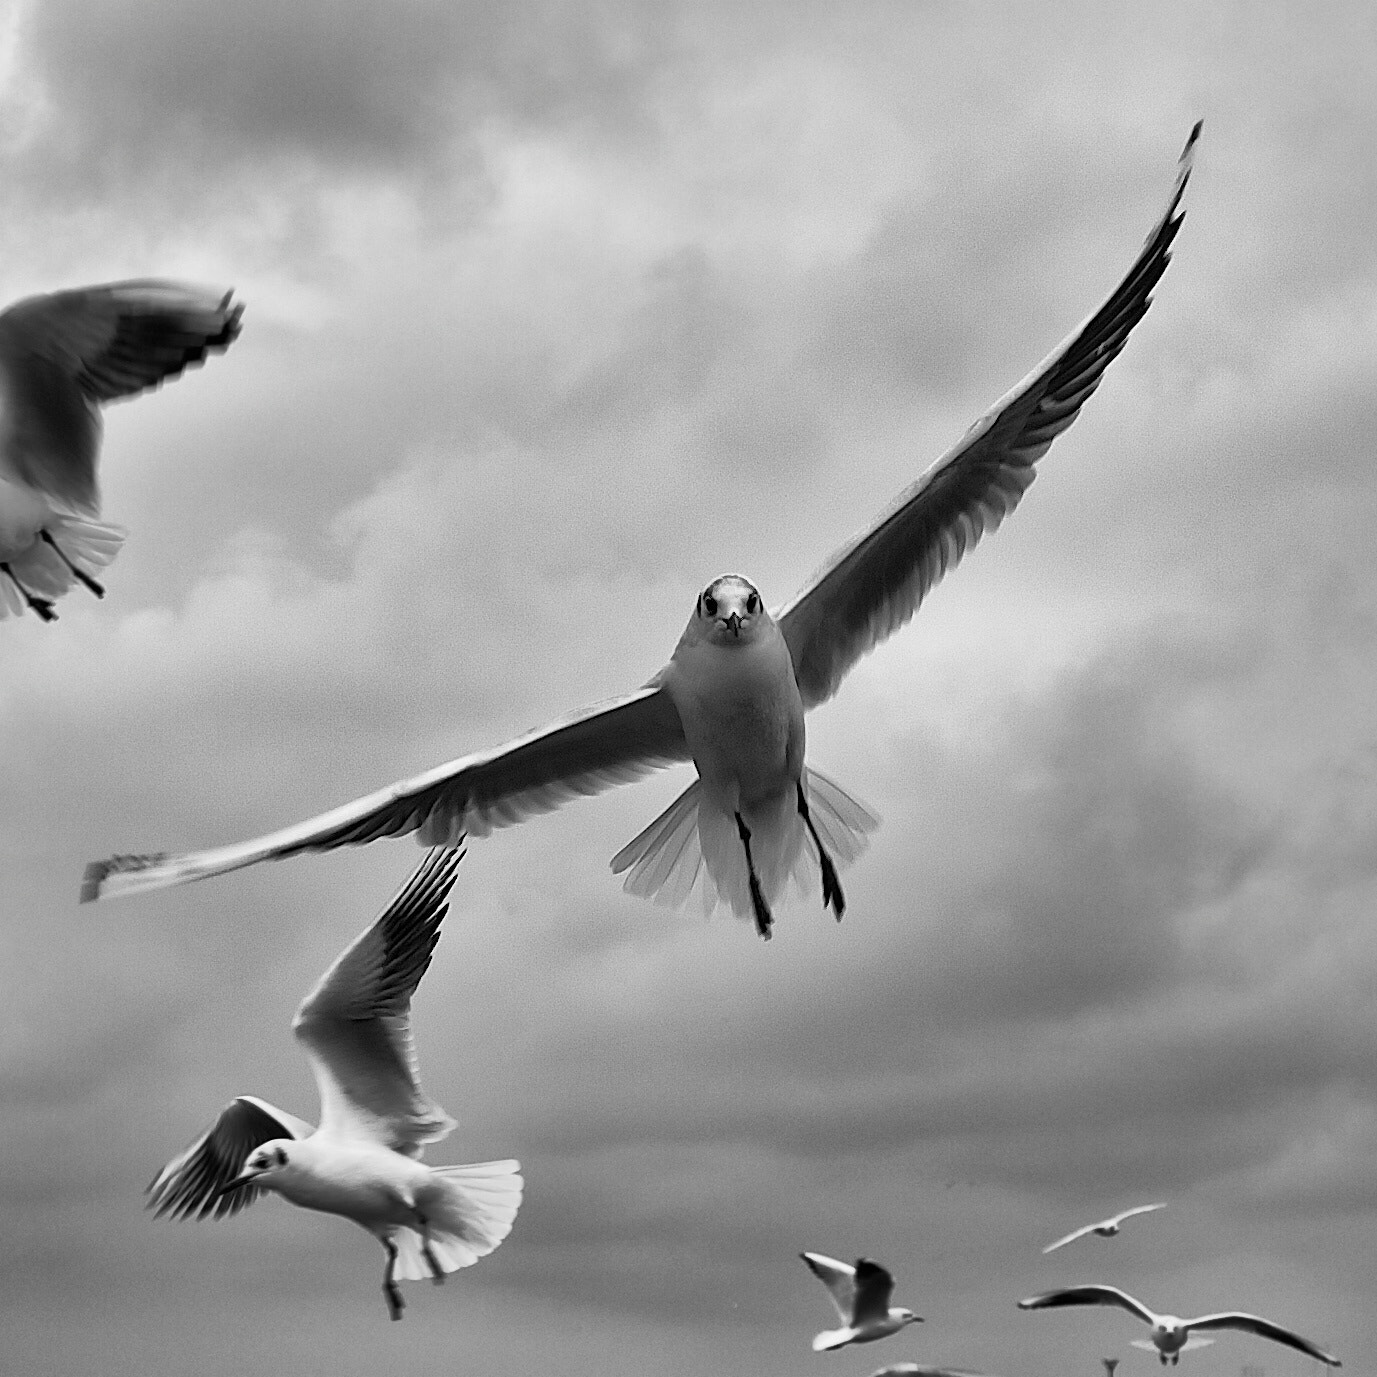 Photograph In flight by Laurence Migne-Peugeot on 500px